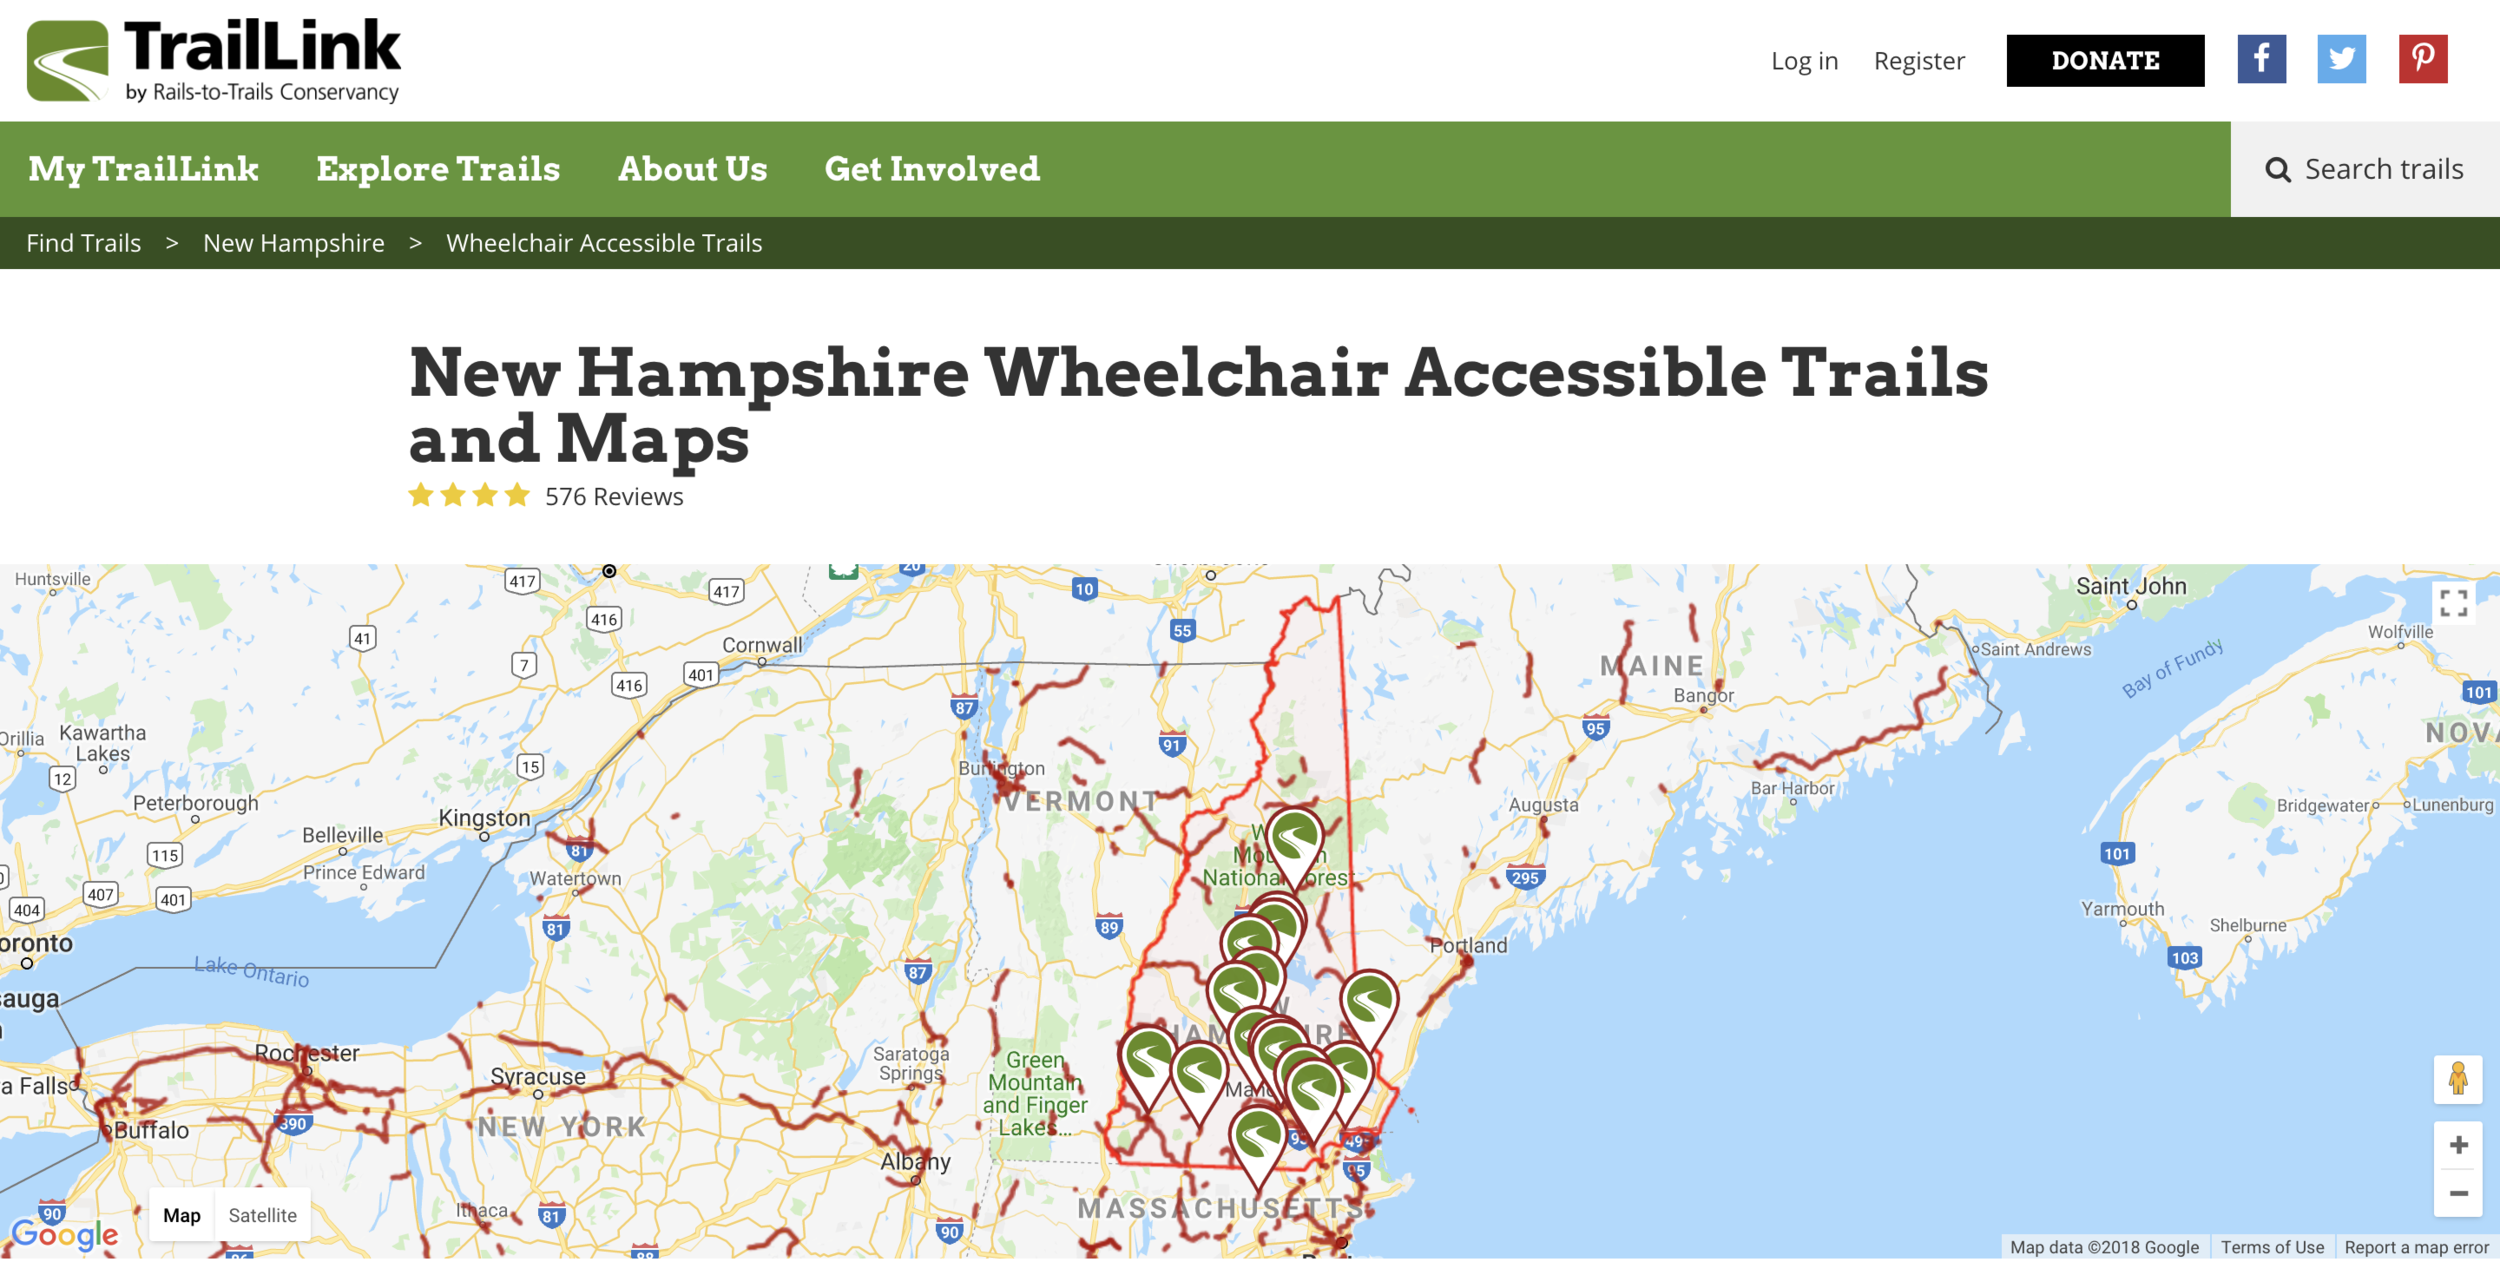 Source:https://www.traillink.com/stateactivity/nh-wheelchair-accessible-trails/